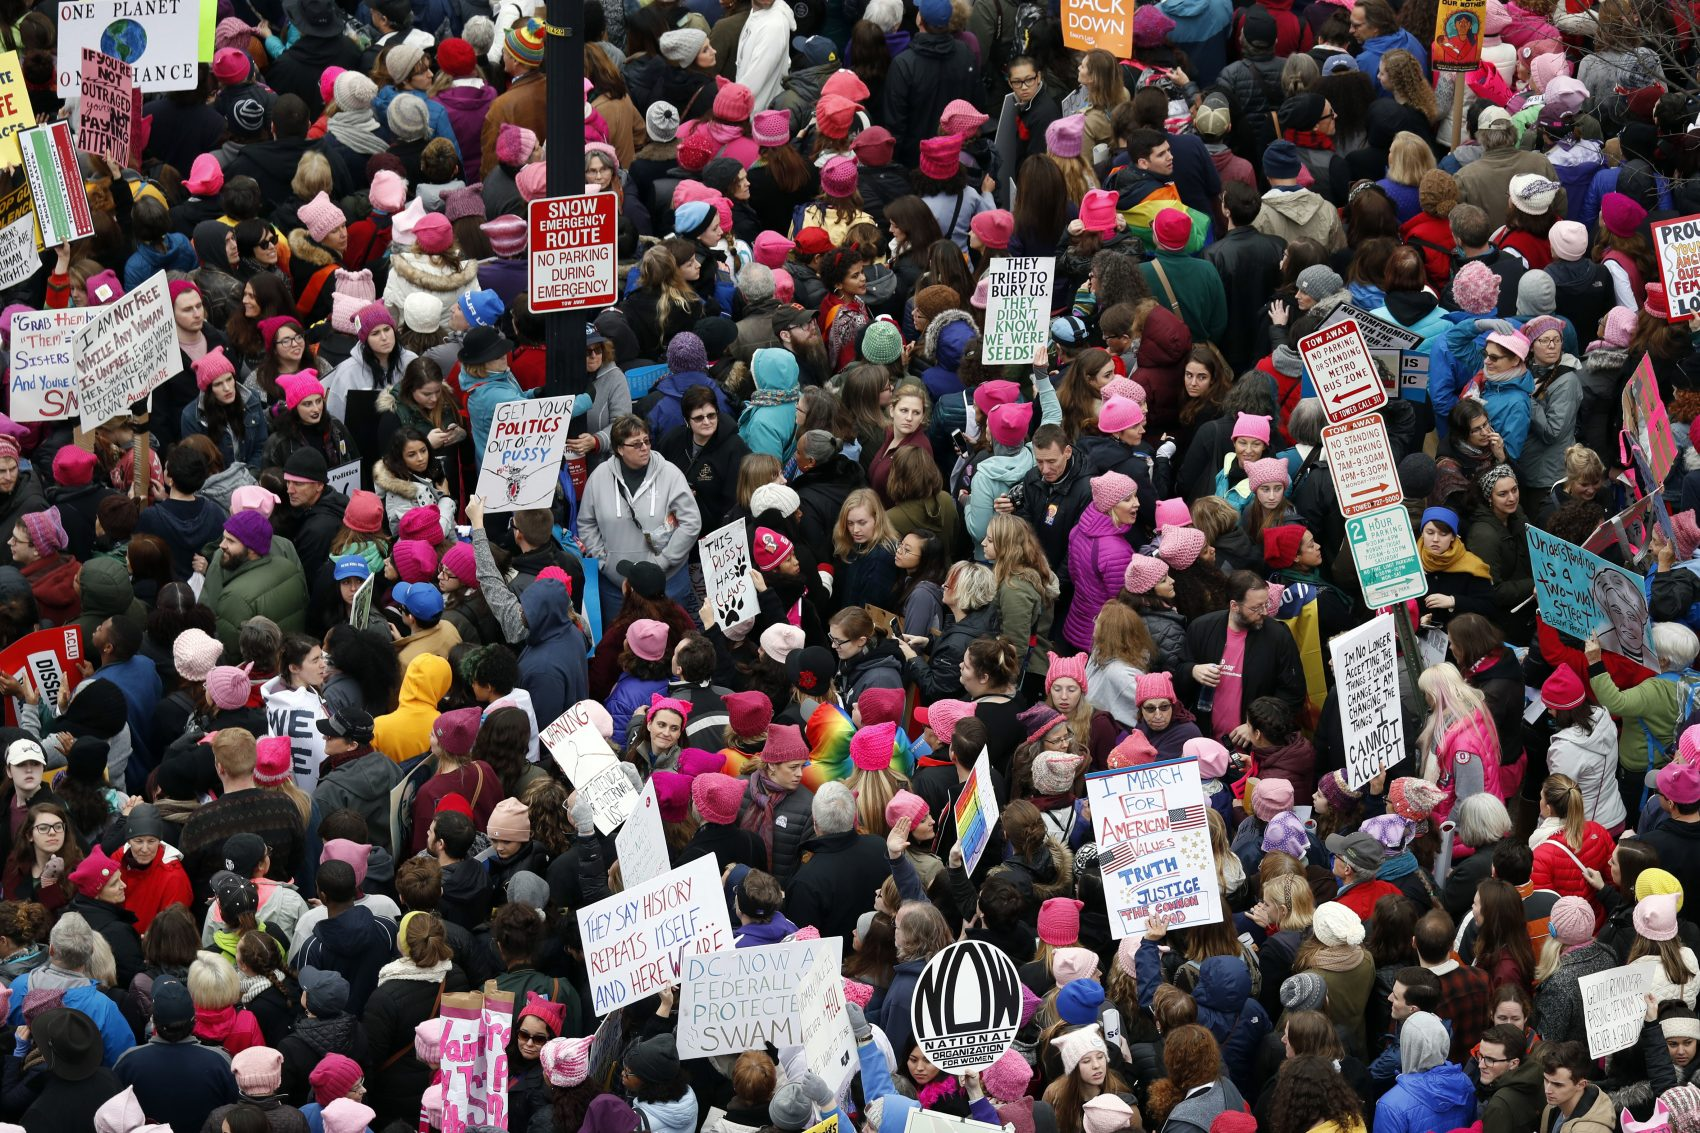 Margot Livesey writes that the Women's March in Washington -- a half-million protesters, no arrests -- demonstrates the power of bringing together people of different ages, colors, faiths and sexual orientations. A crowd packs Independence Avenue during the Women's March on Washington, Saturday, Jan. 21, 2017 in Washington. (Alex Brandon/AP)